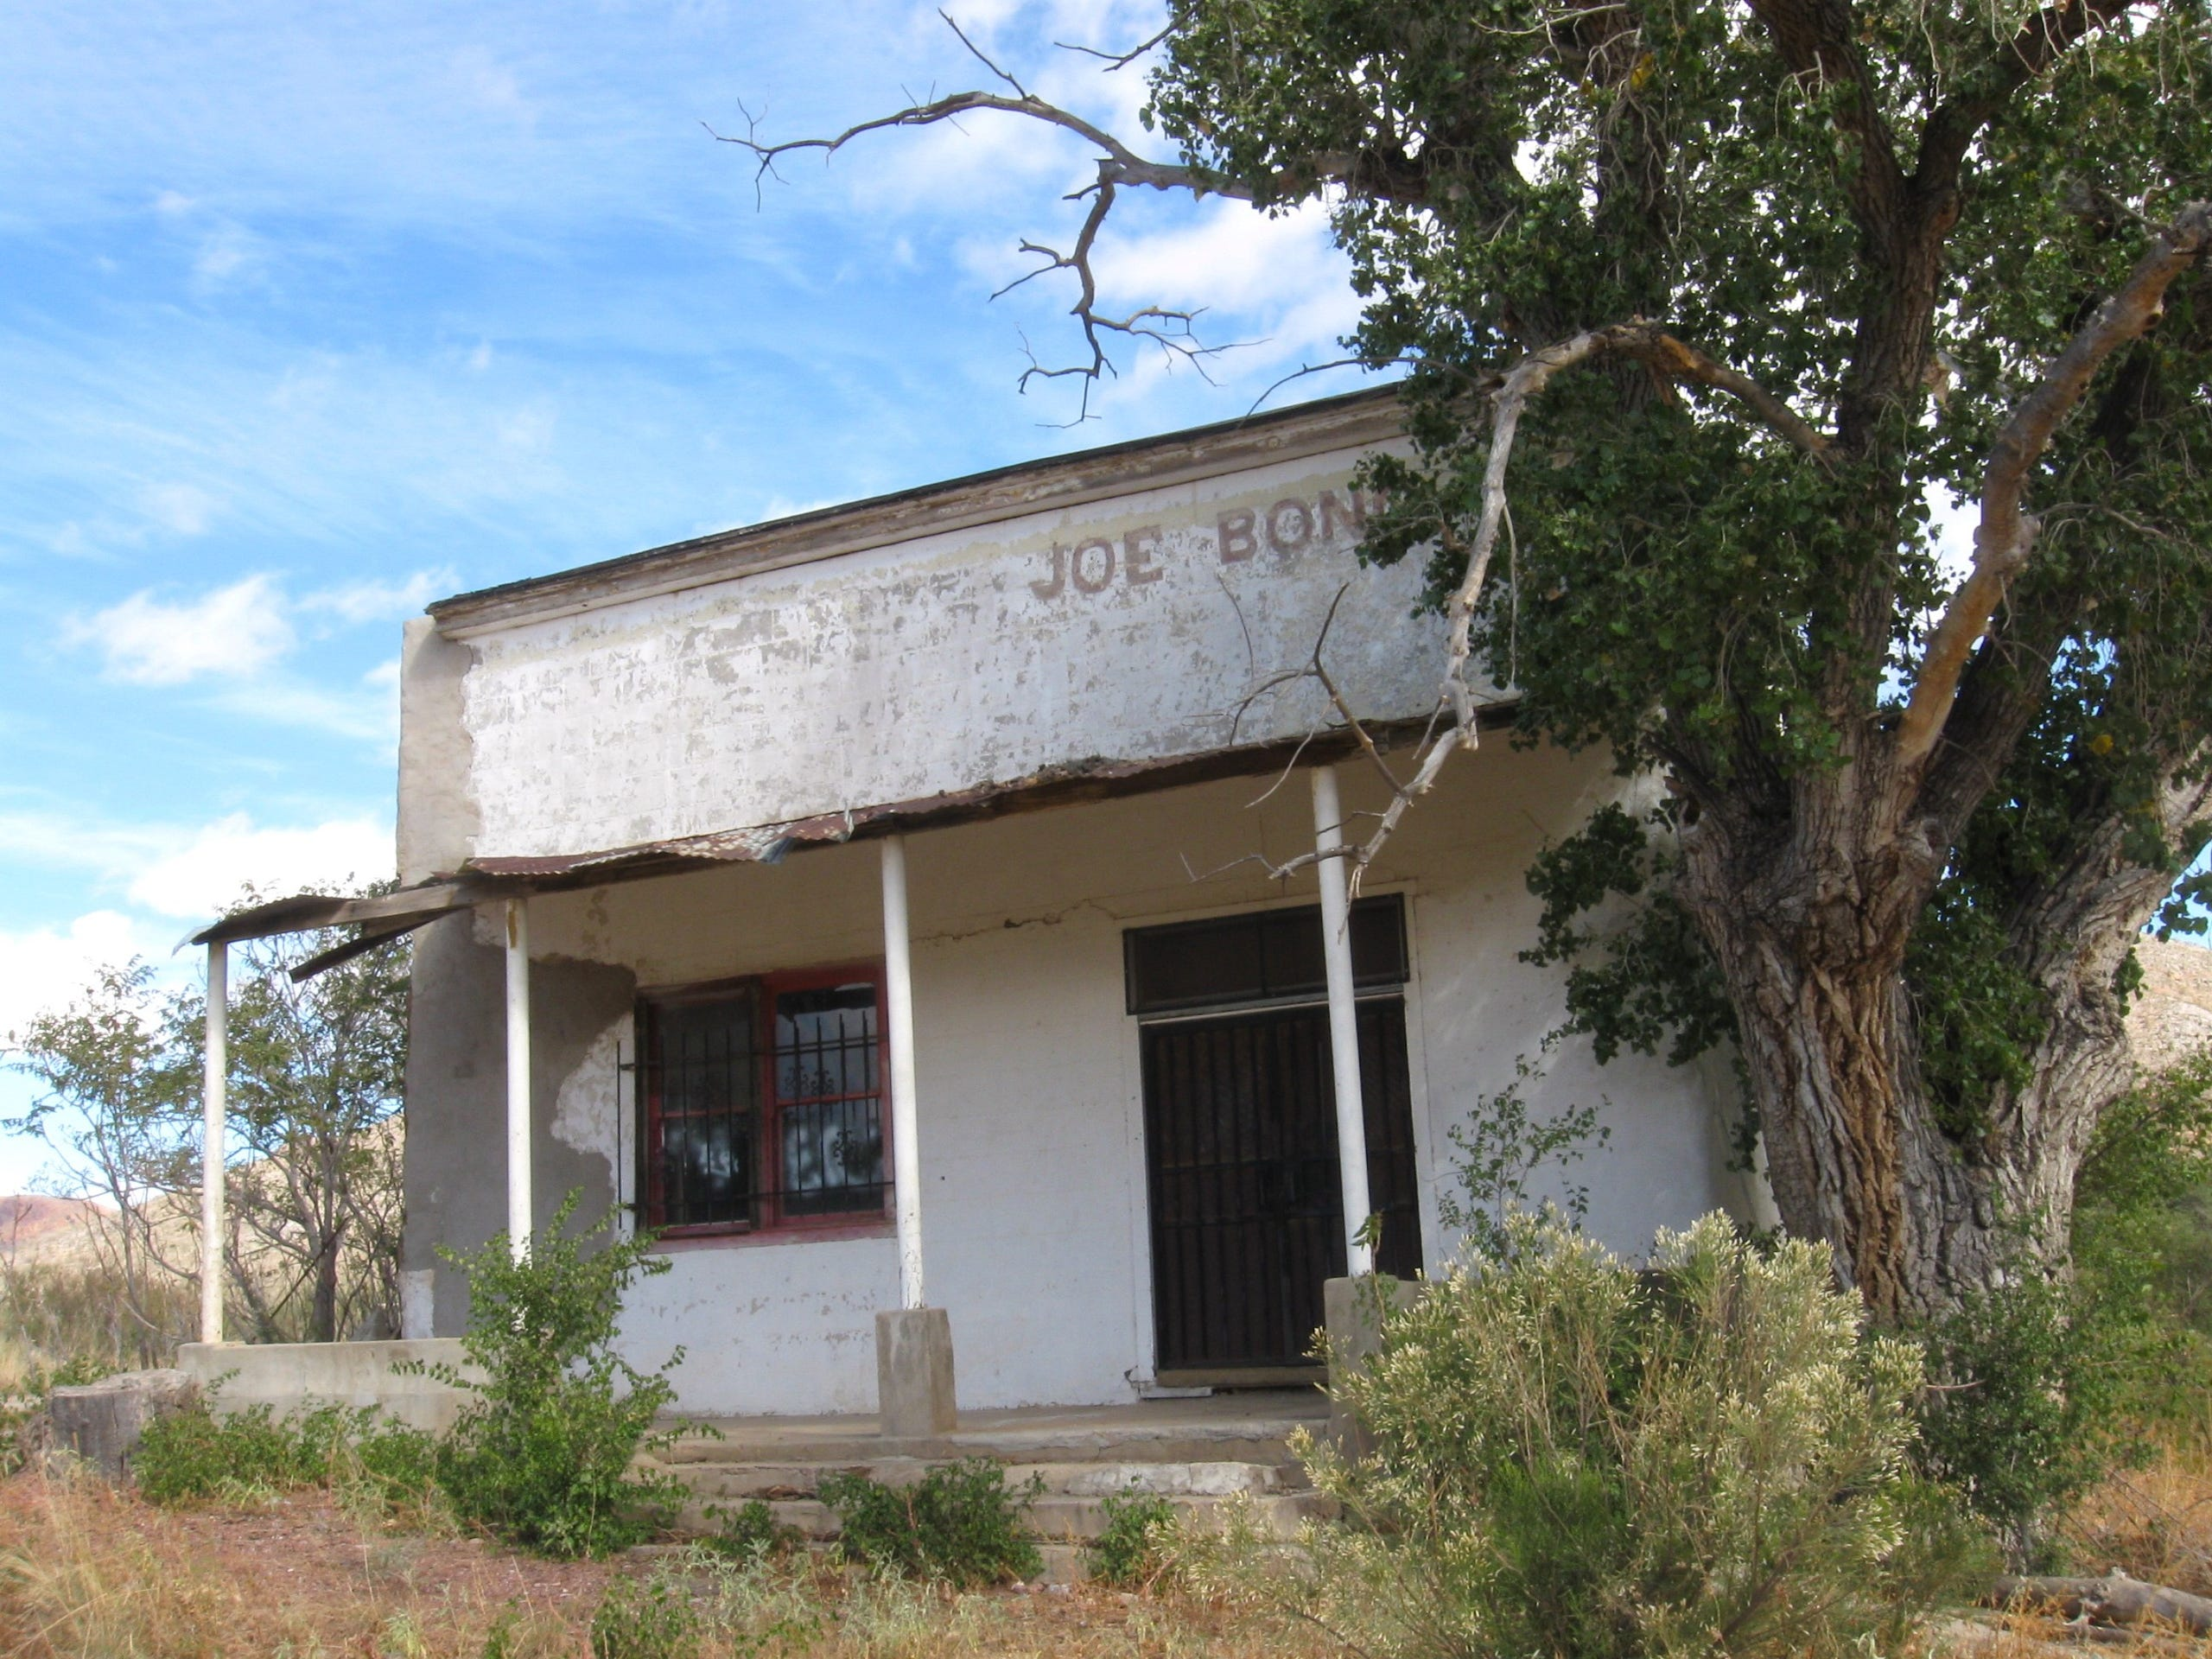 Joe Bono, who purchased the ghost town of Gleeson, Arizona, in 2014, is the son of the man who first opened the general store.